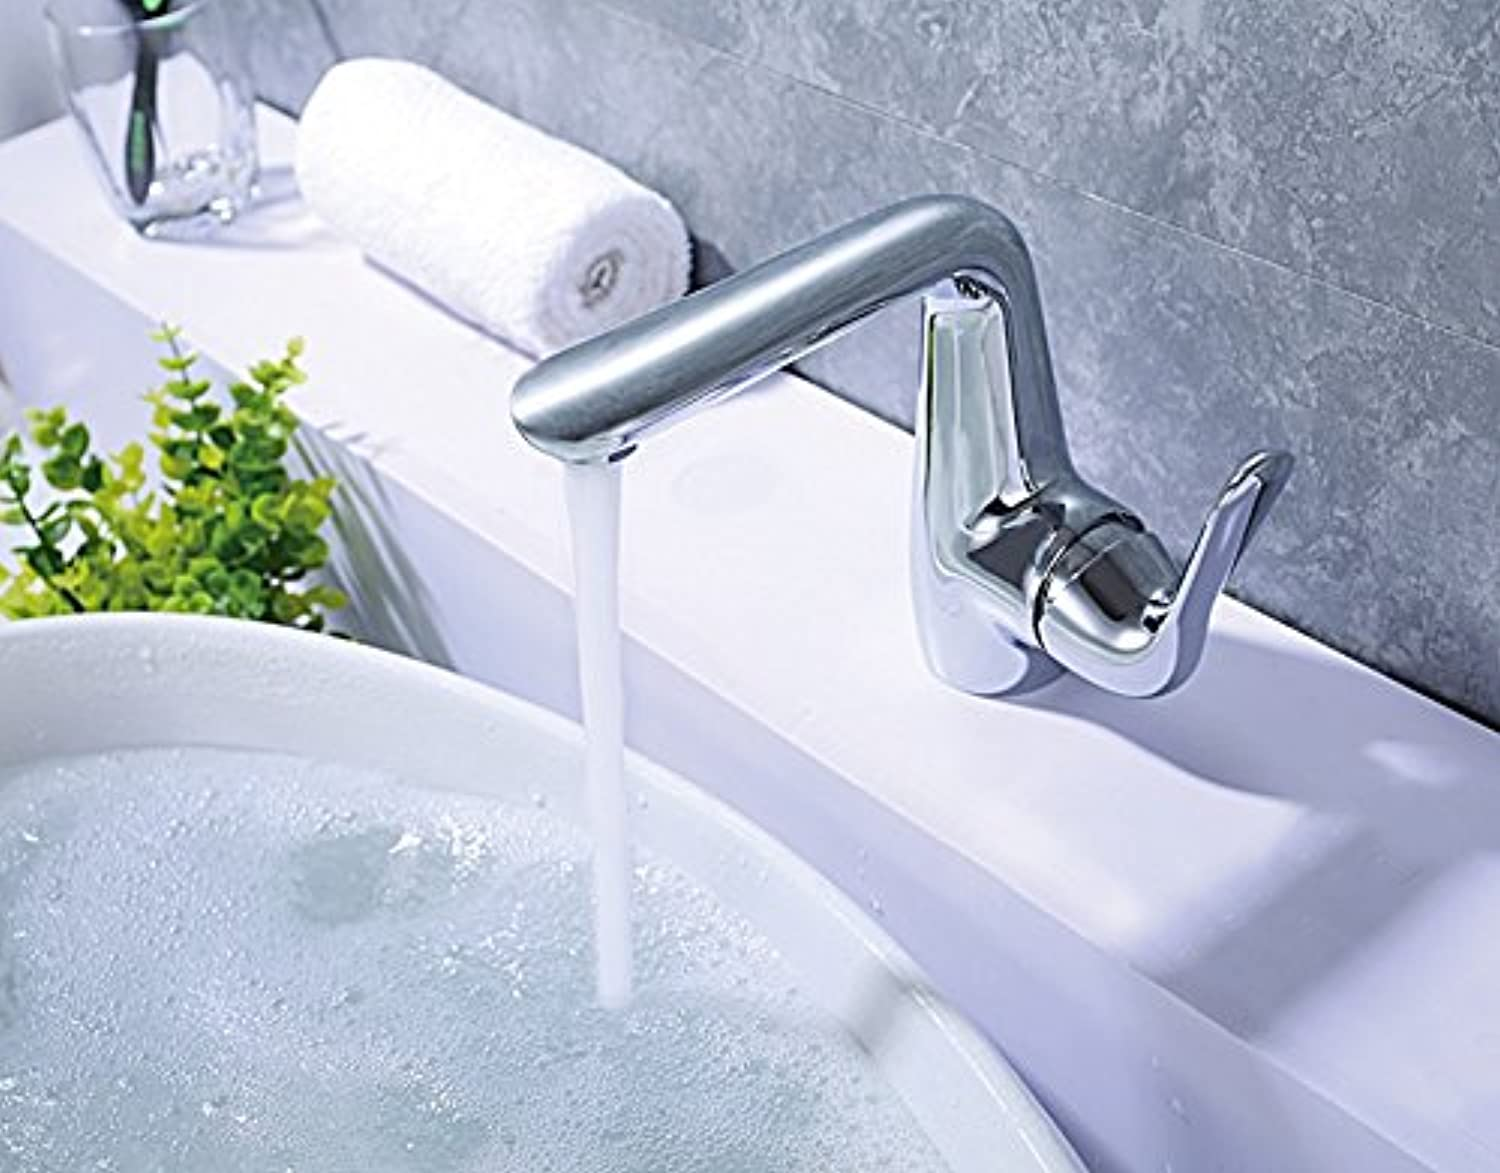 Hot and Cold Water Mixer Switch Bathroom Basin taps Bath Sink Faucet Accessories